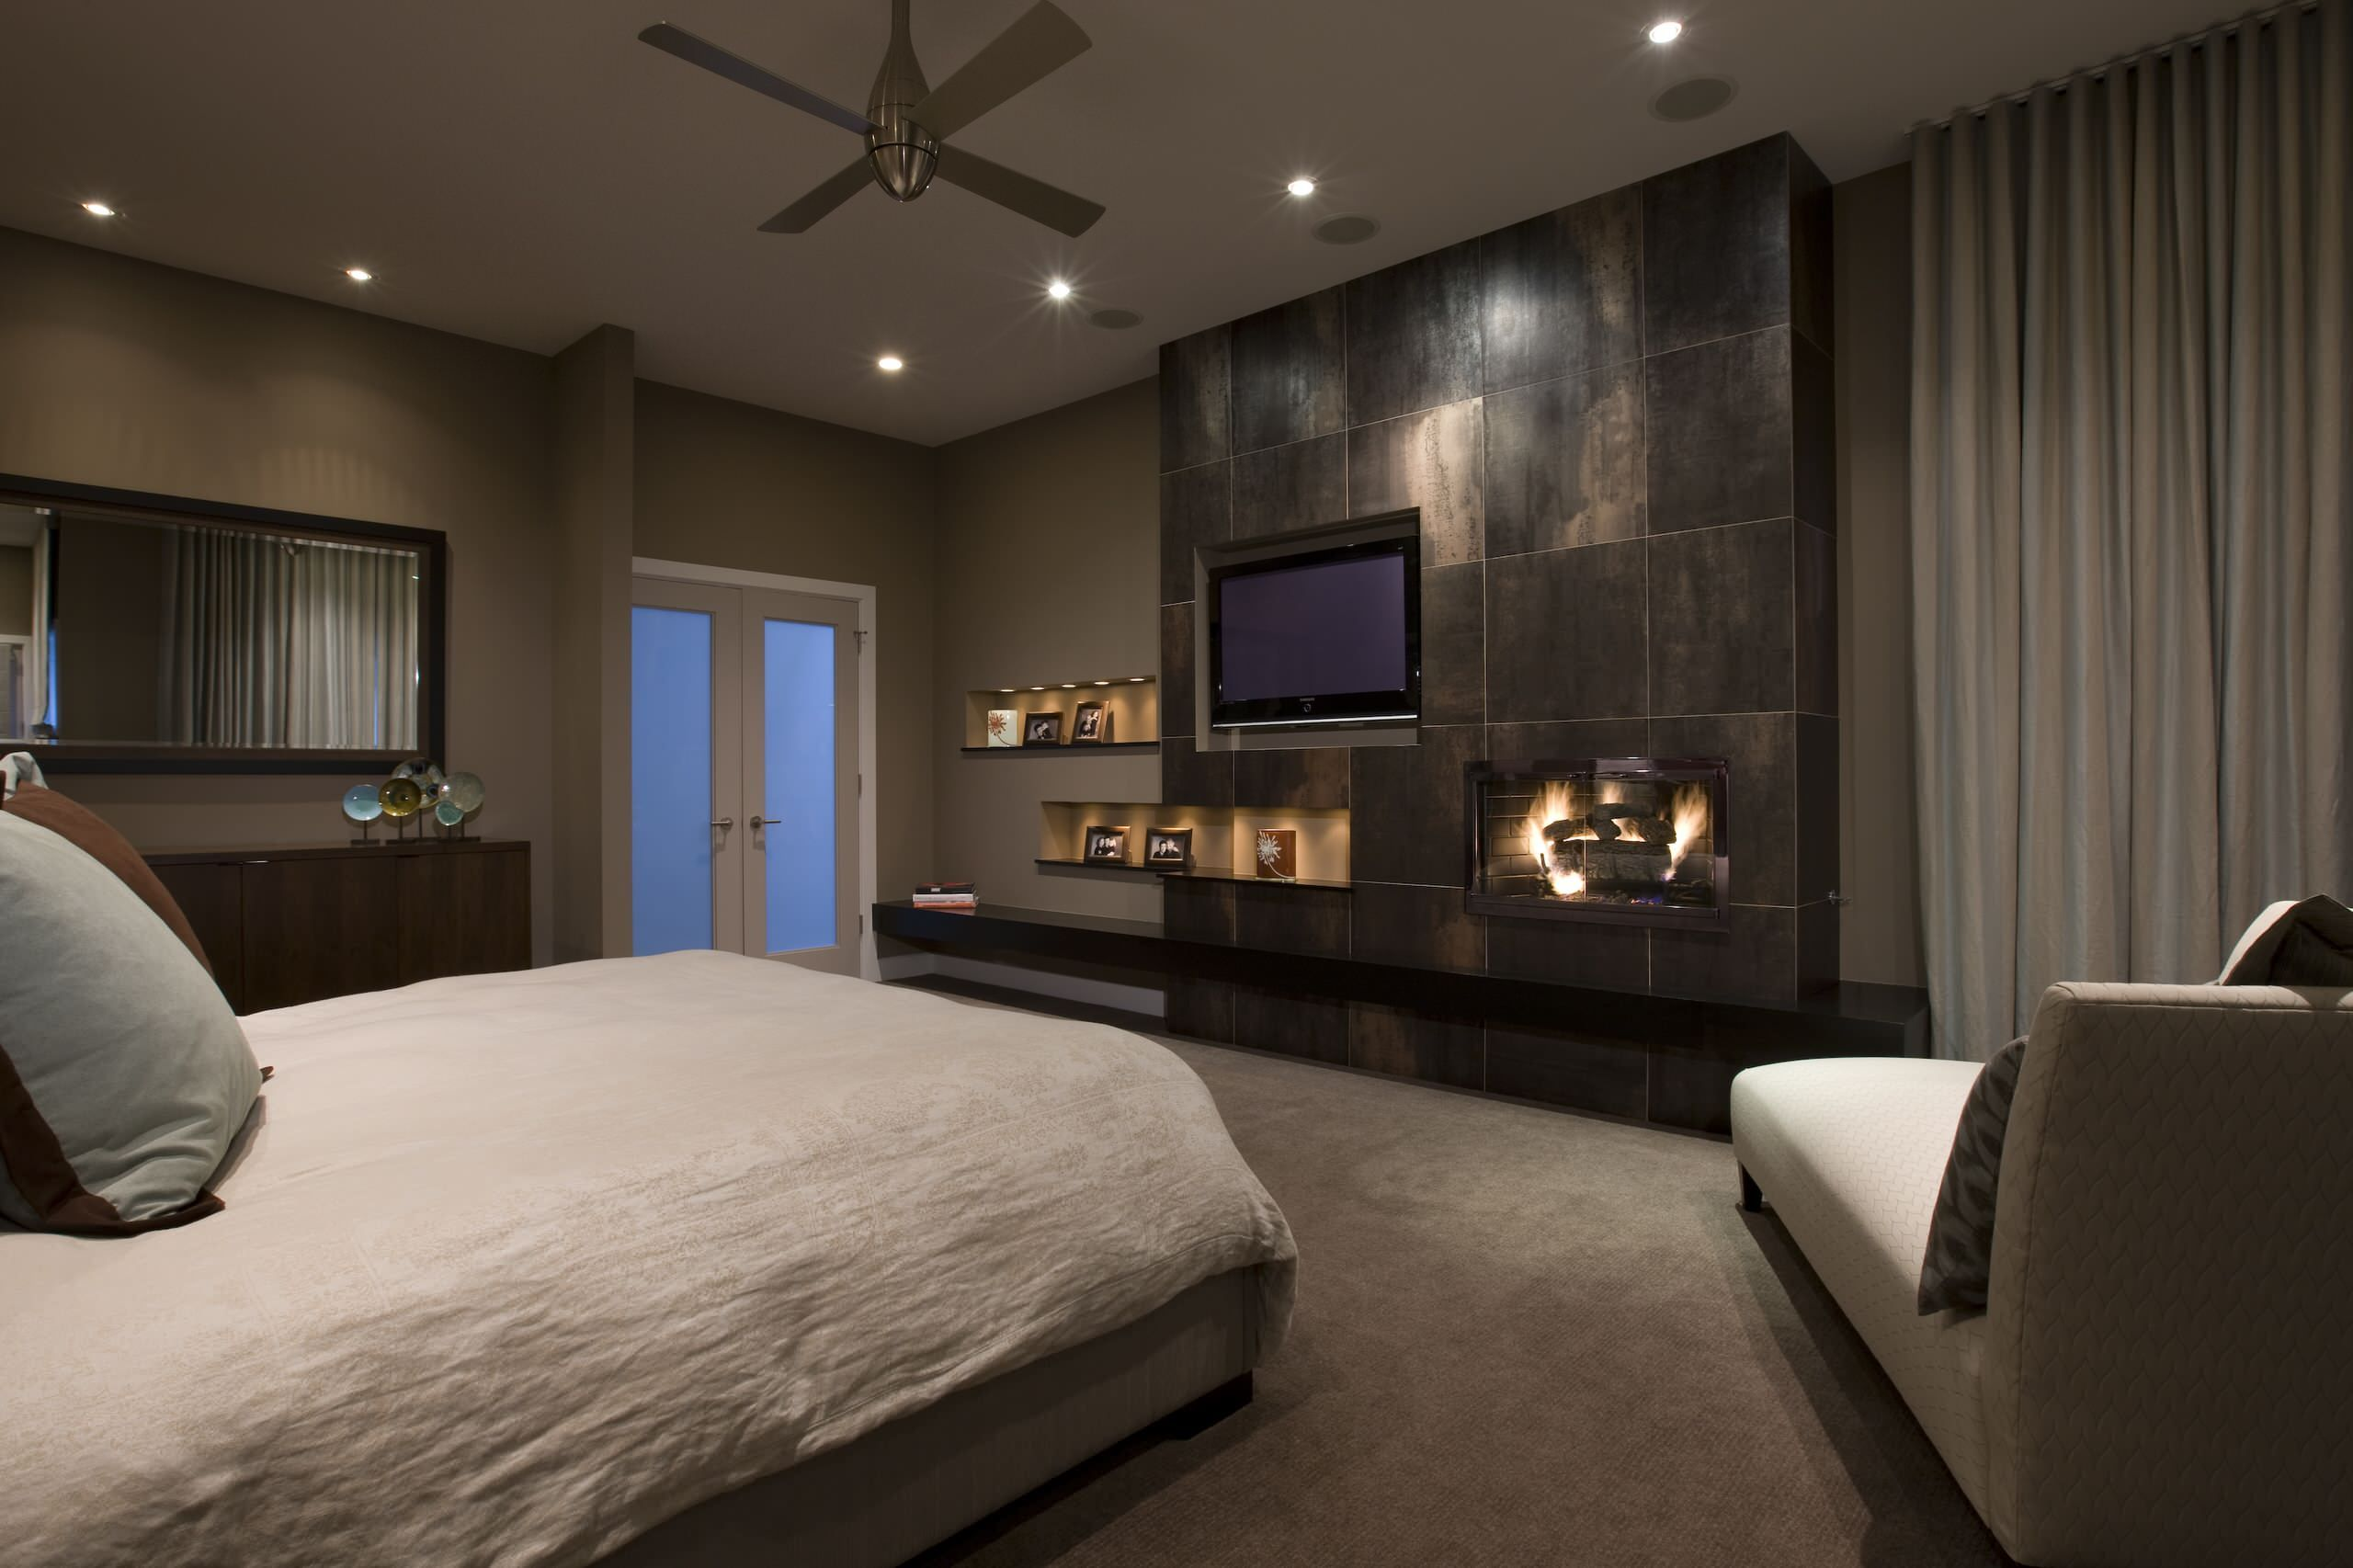 modern master bedroom with fireplace. Master Bedroom Design Modern With Fireplace D